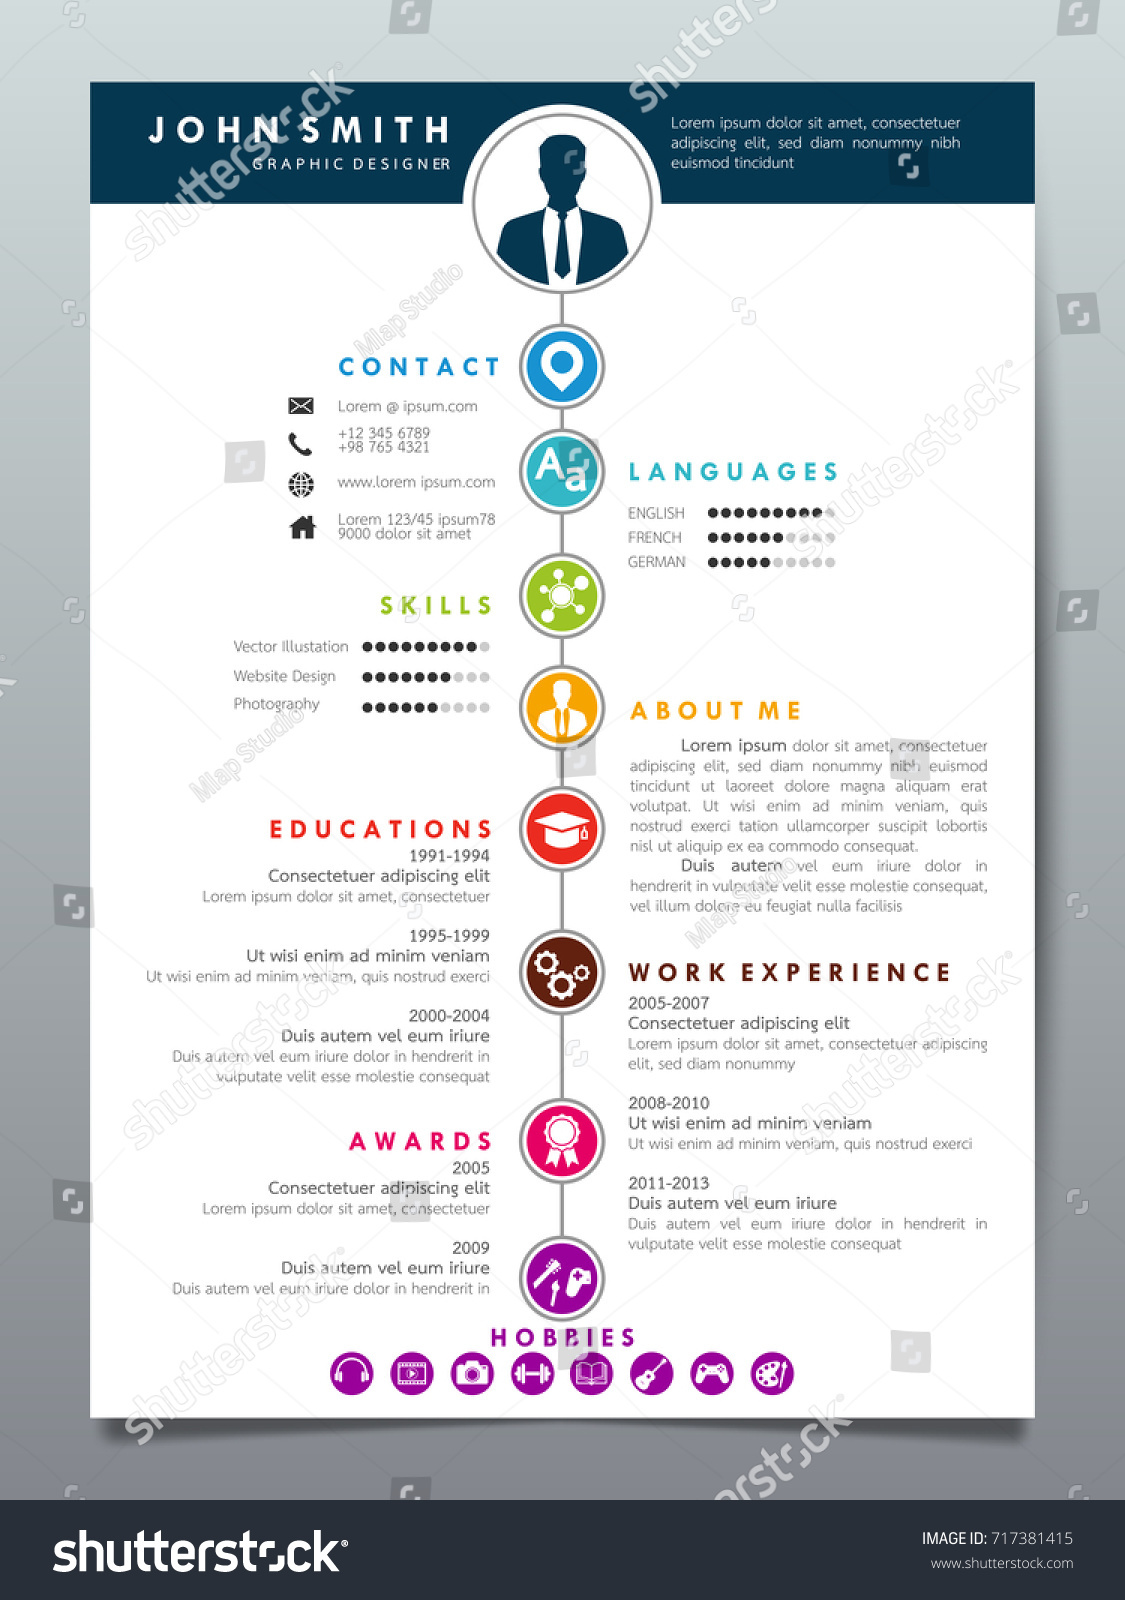 Resume Design Template. Classic Resume Design Template Set Classic ...